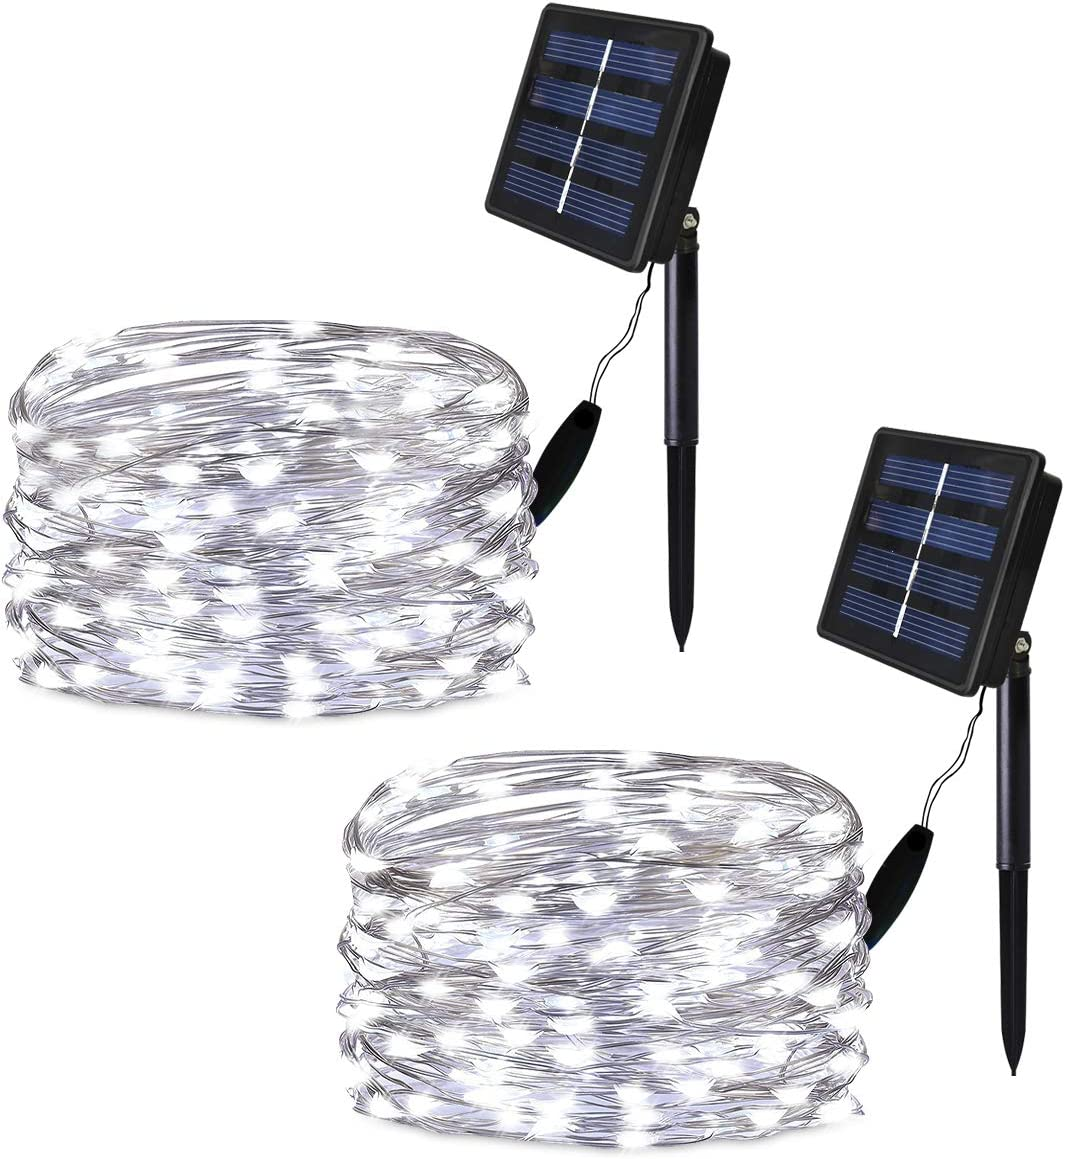 Solarmks Solar String Lights, 2 Pack 100 LED Solar Fairy Lights Waterproof Outdoor String Lights 33ft Copper Wire Lights for Patio Lawn Garden Gate Yard Party Wedding Christmas Decoration,Cool White